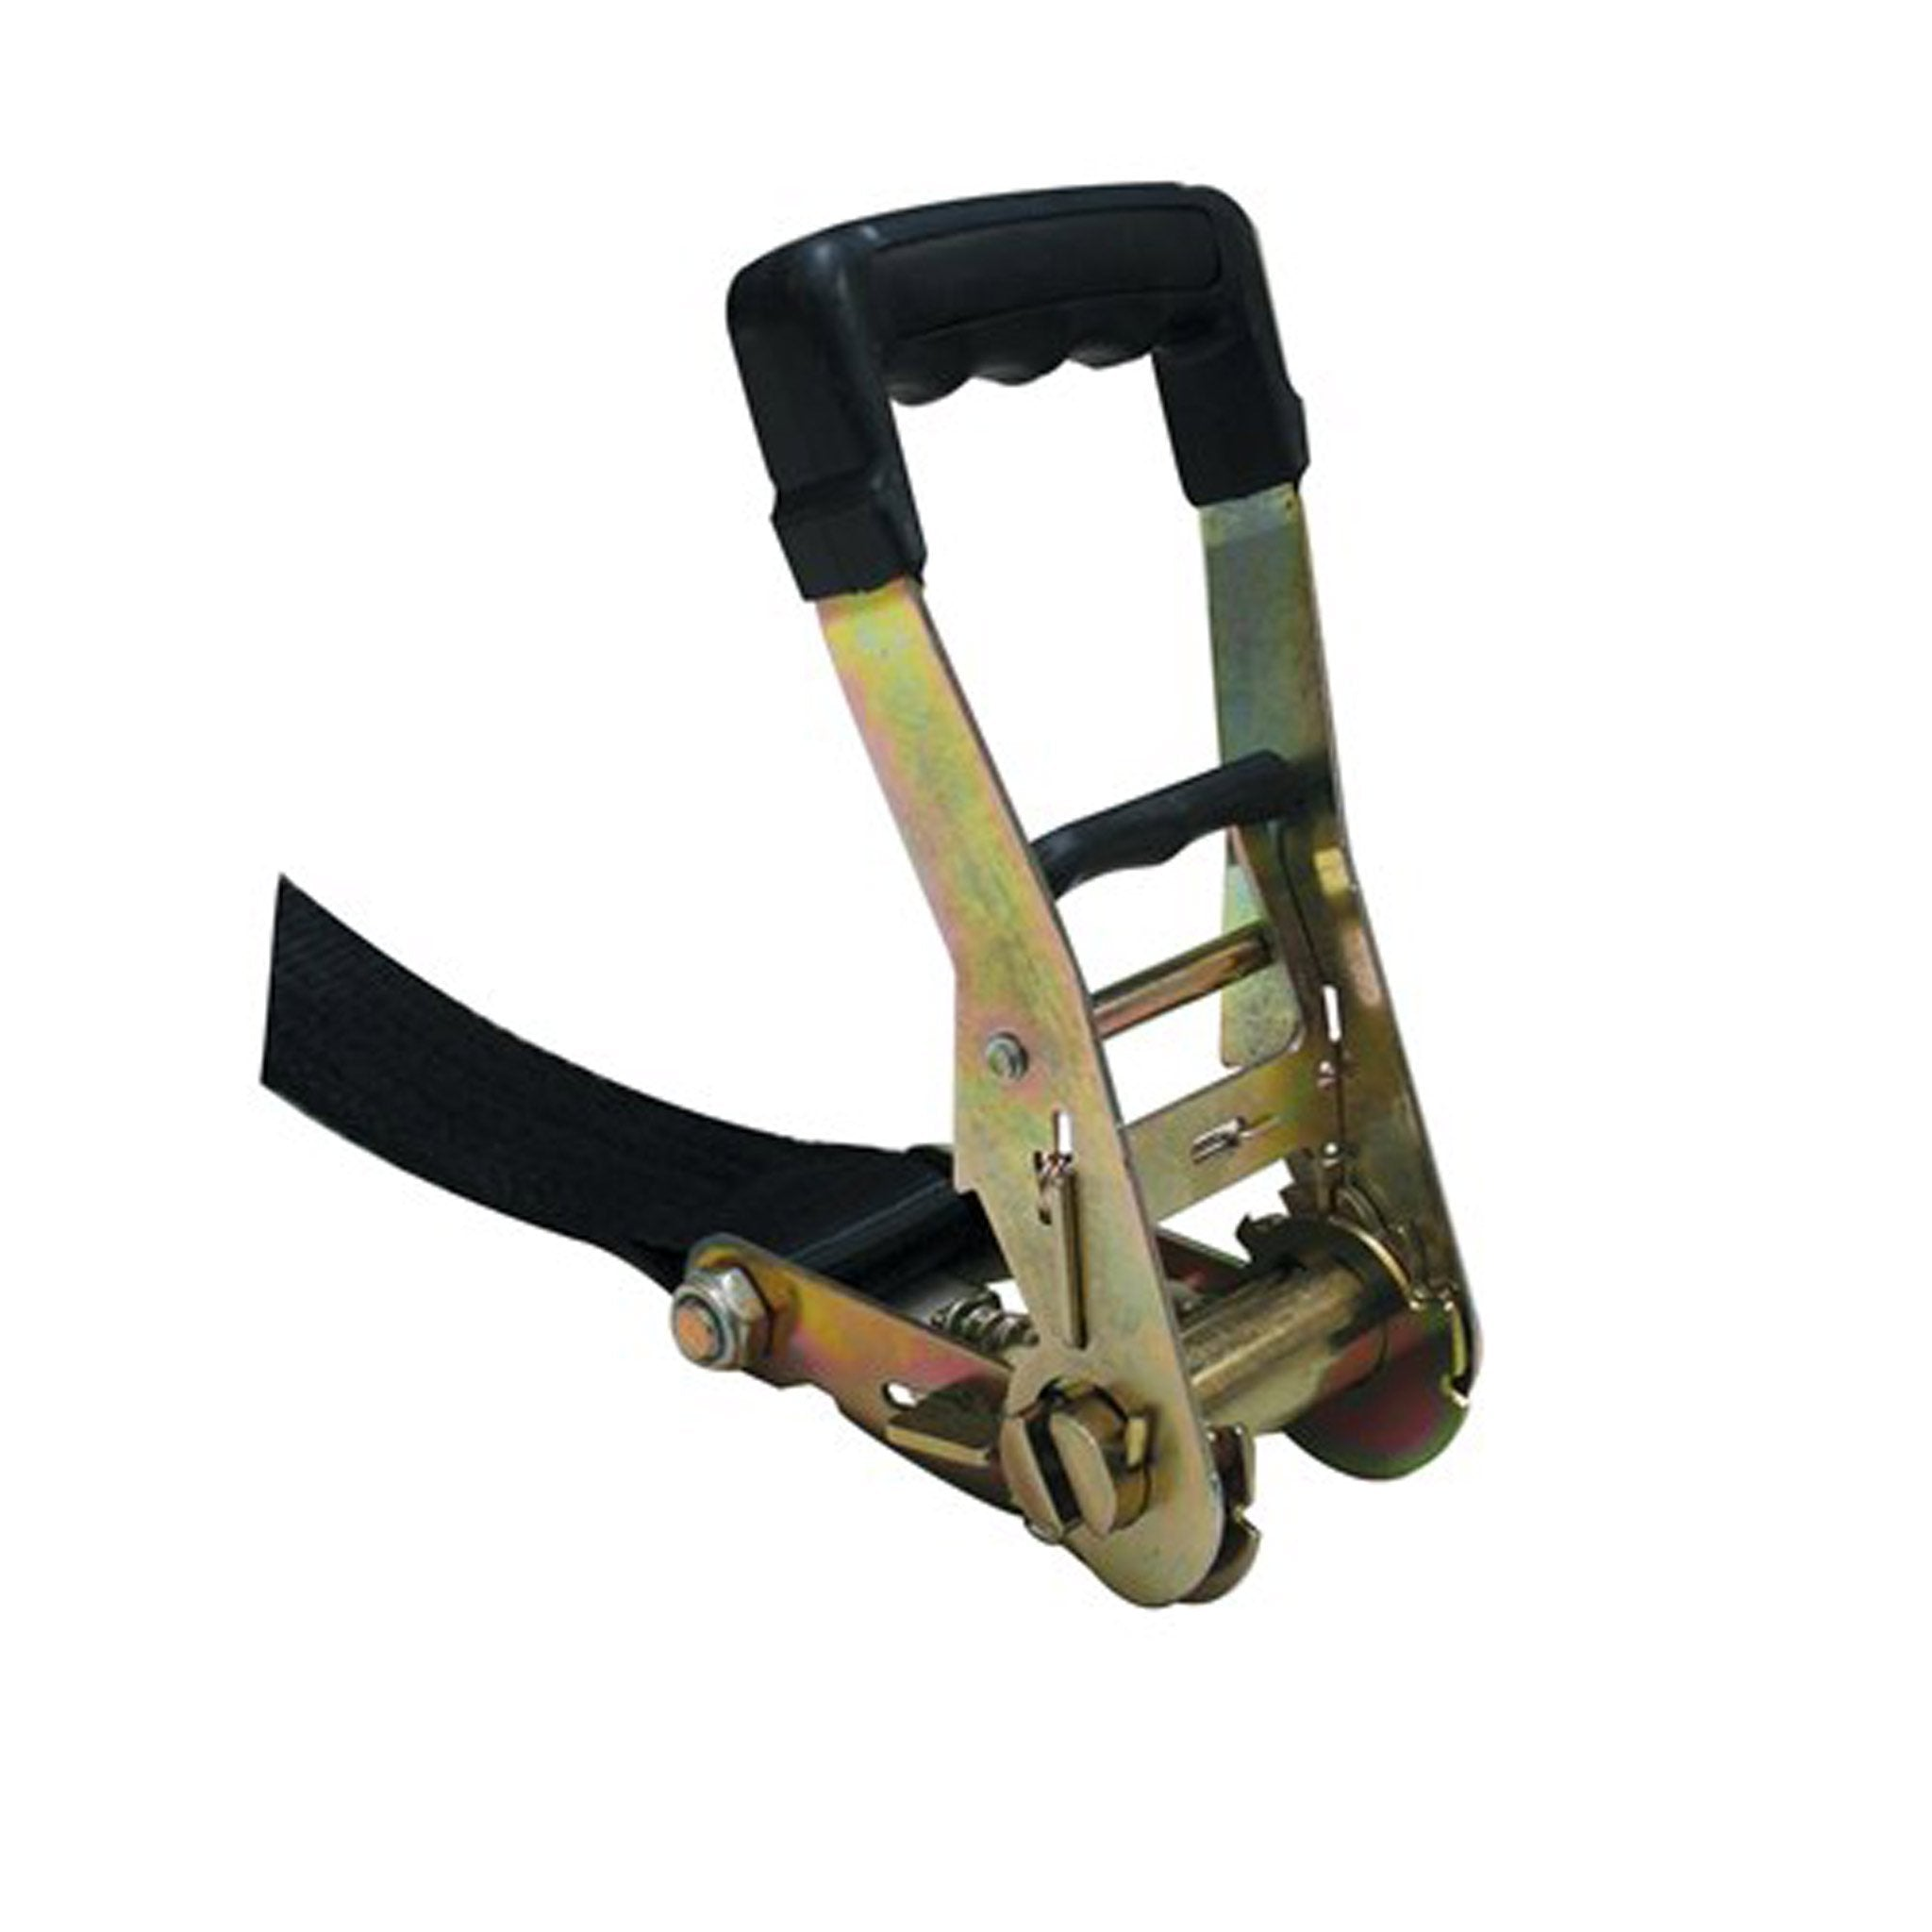 Ratchet Strap Black 8 m Endless - Arthur Beale